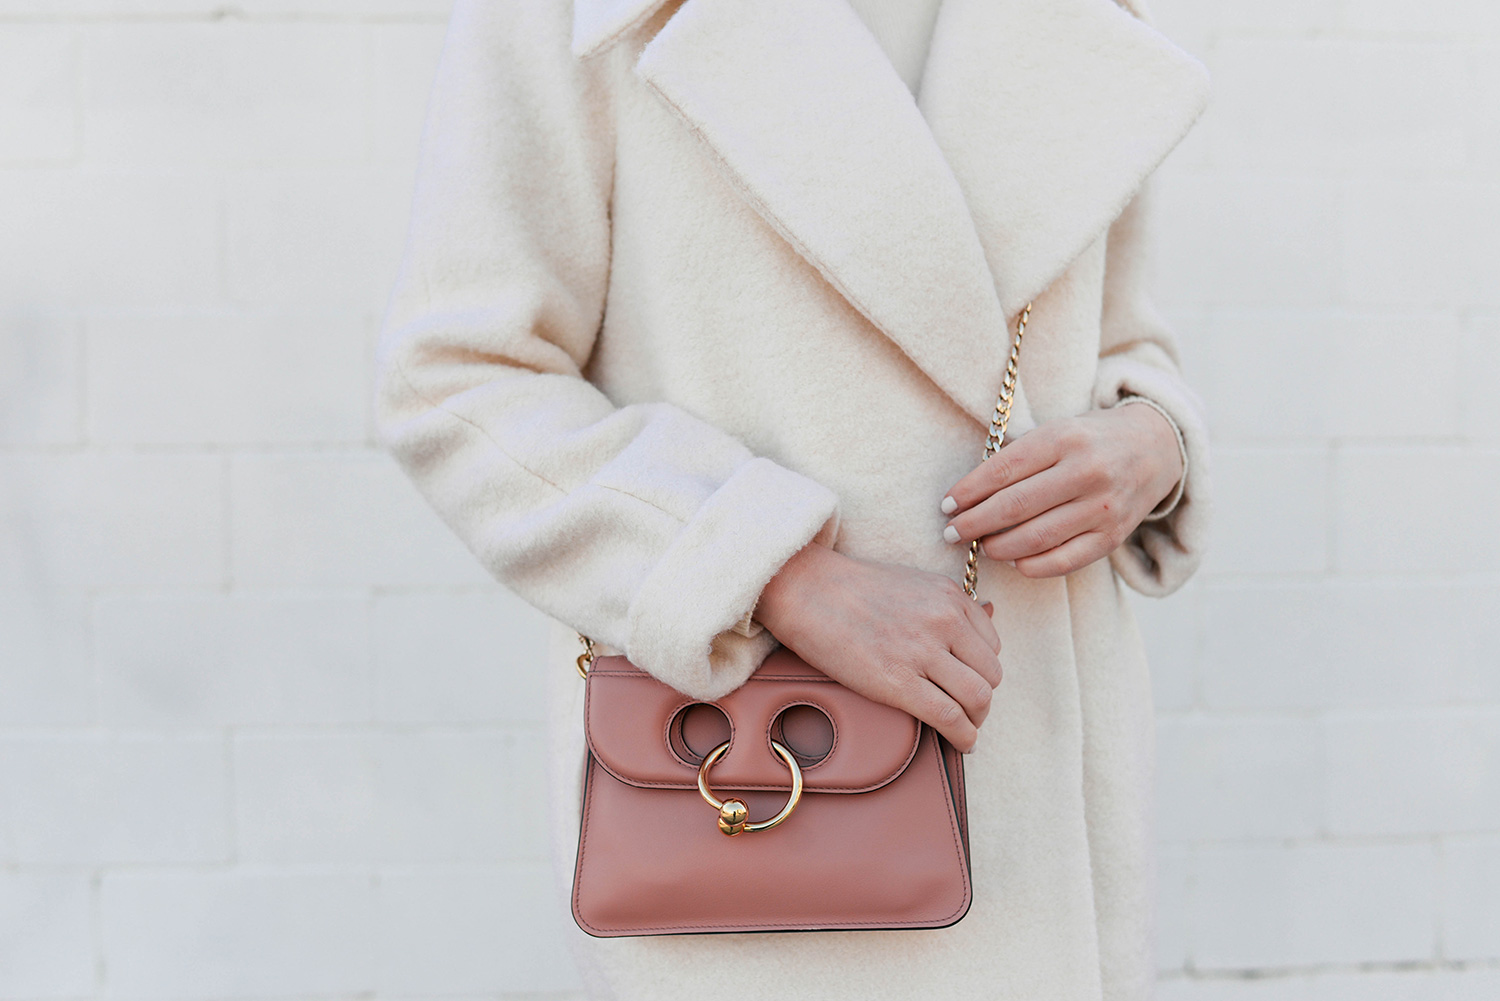 JW Anderson Pierce Bag in Pink   Dallas Style Blogger